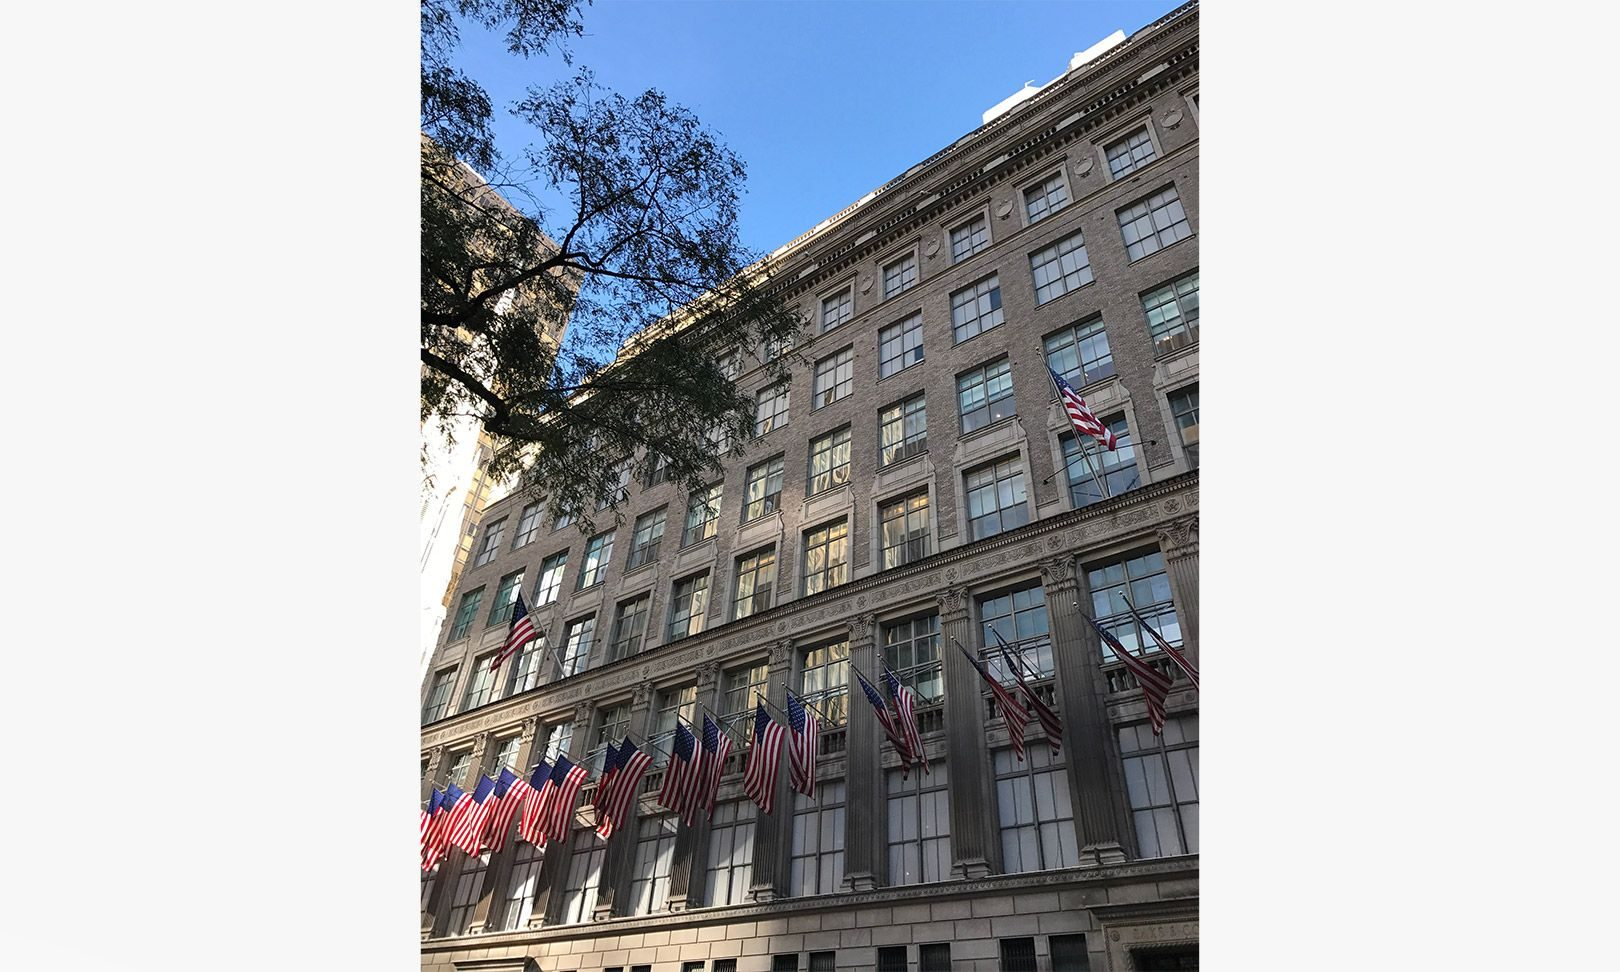 Why are we waving a flag sva ma design research for 116 west 23rd street 5th floor new york ny 10011